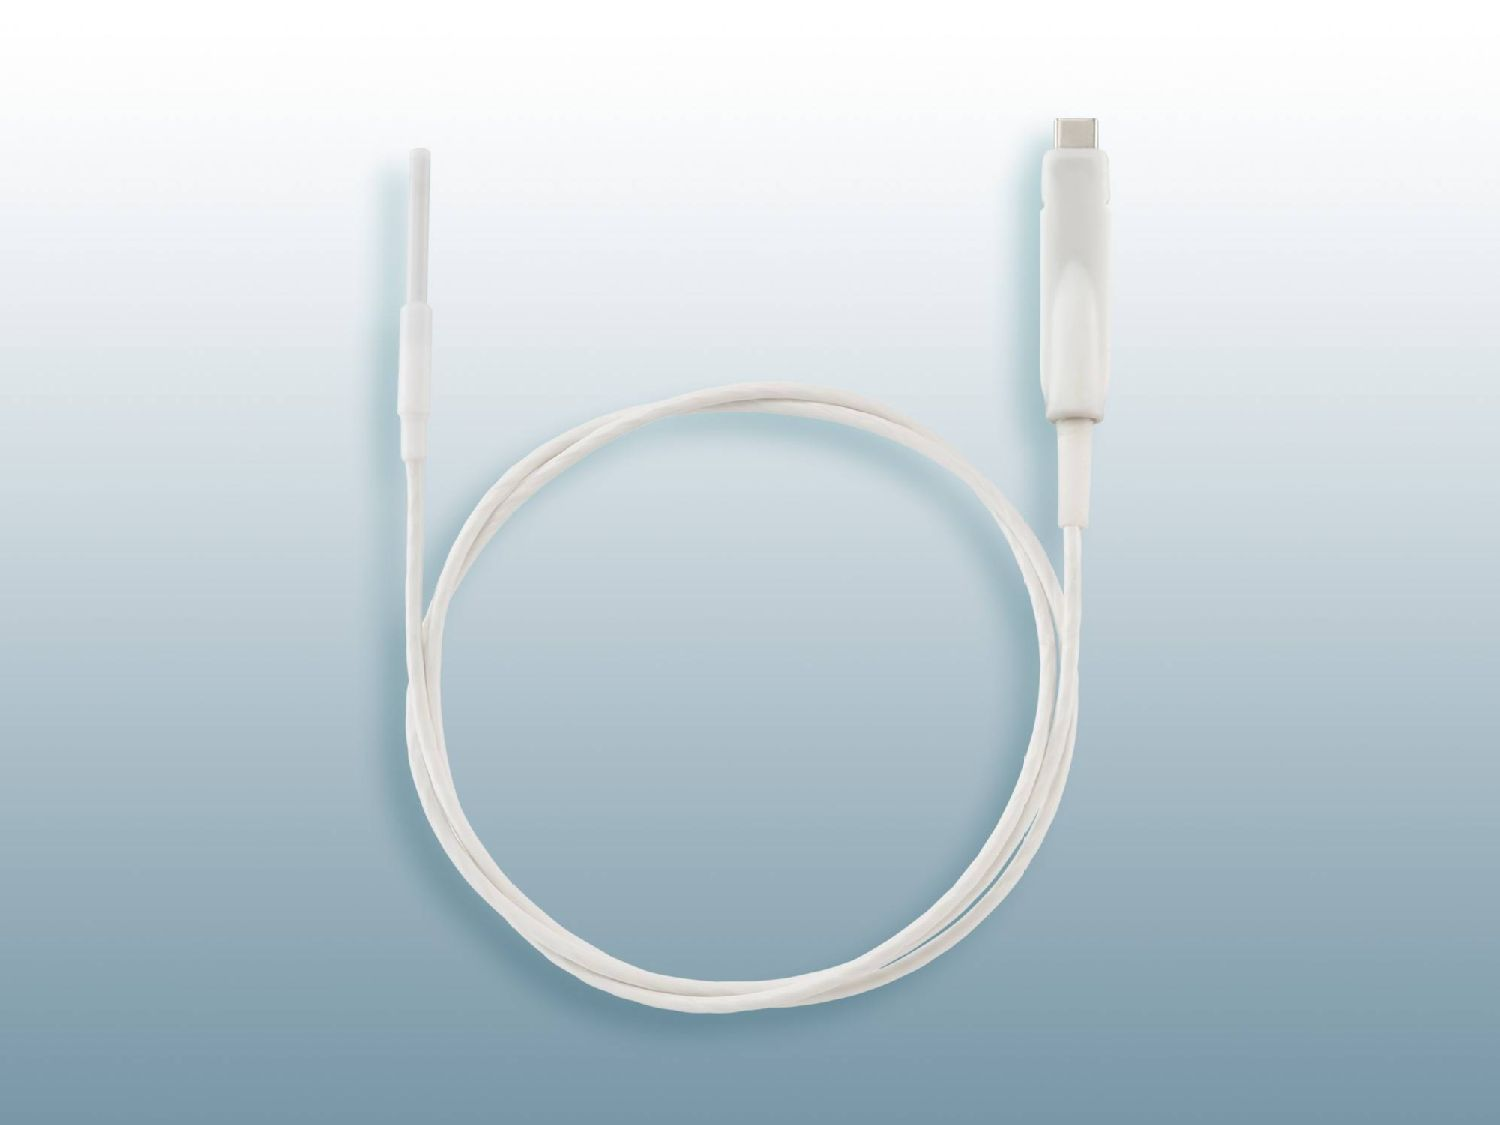 0618-0071-Pt-100-flexible-temperature-probe-2000x1500px.jpg